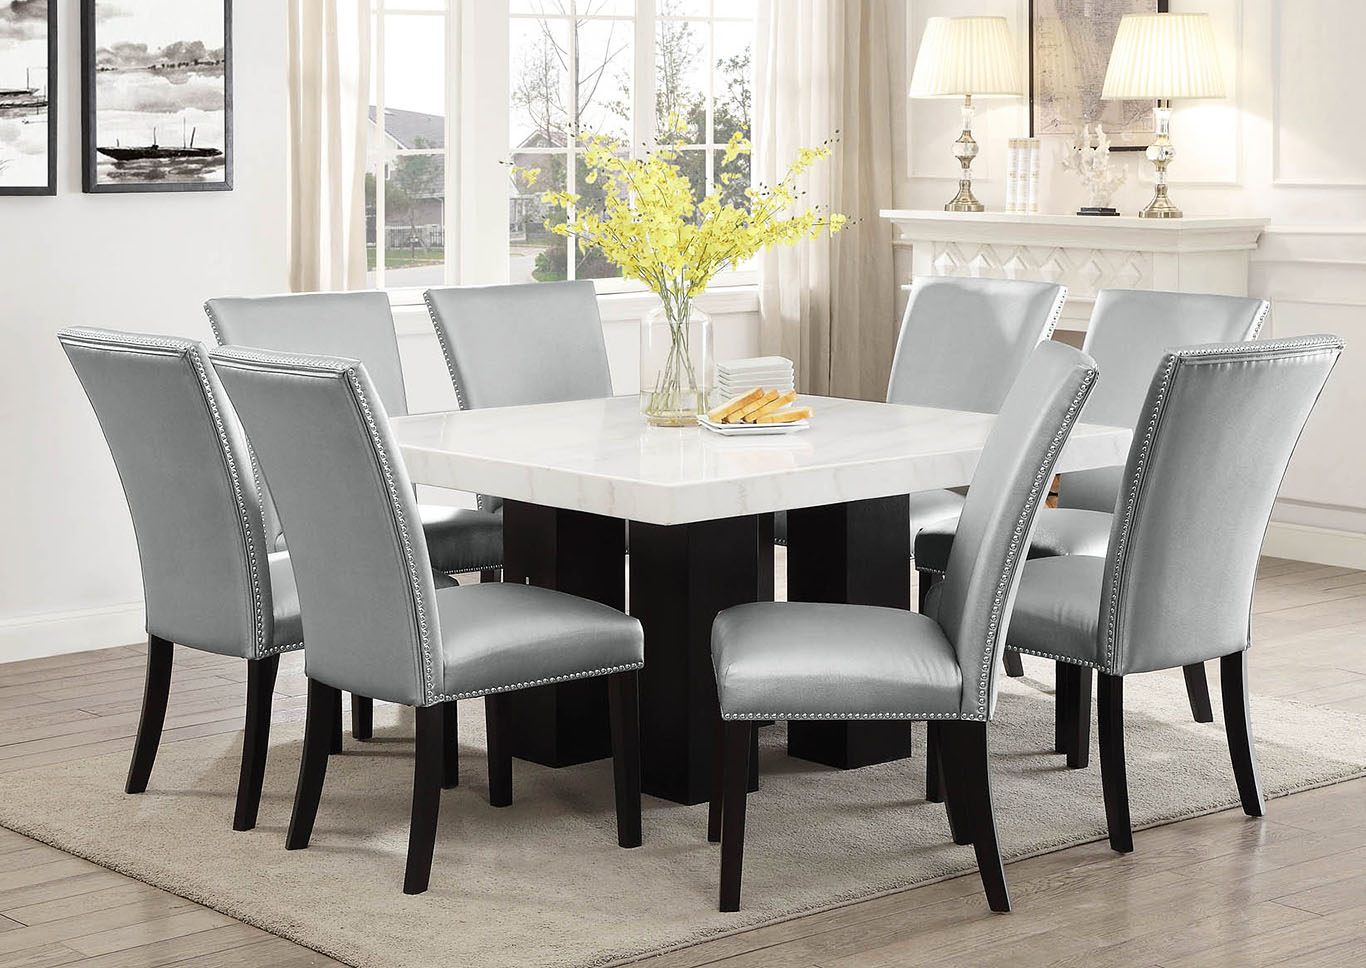 Camila Brown Square Marble Top Dining Set W 8 Chairs Silver Pu Ivan Smith